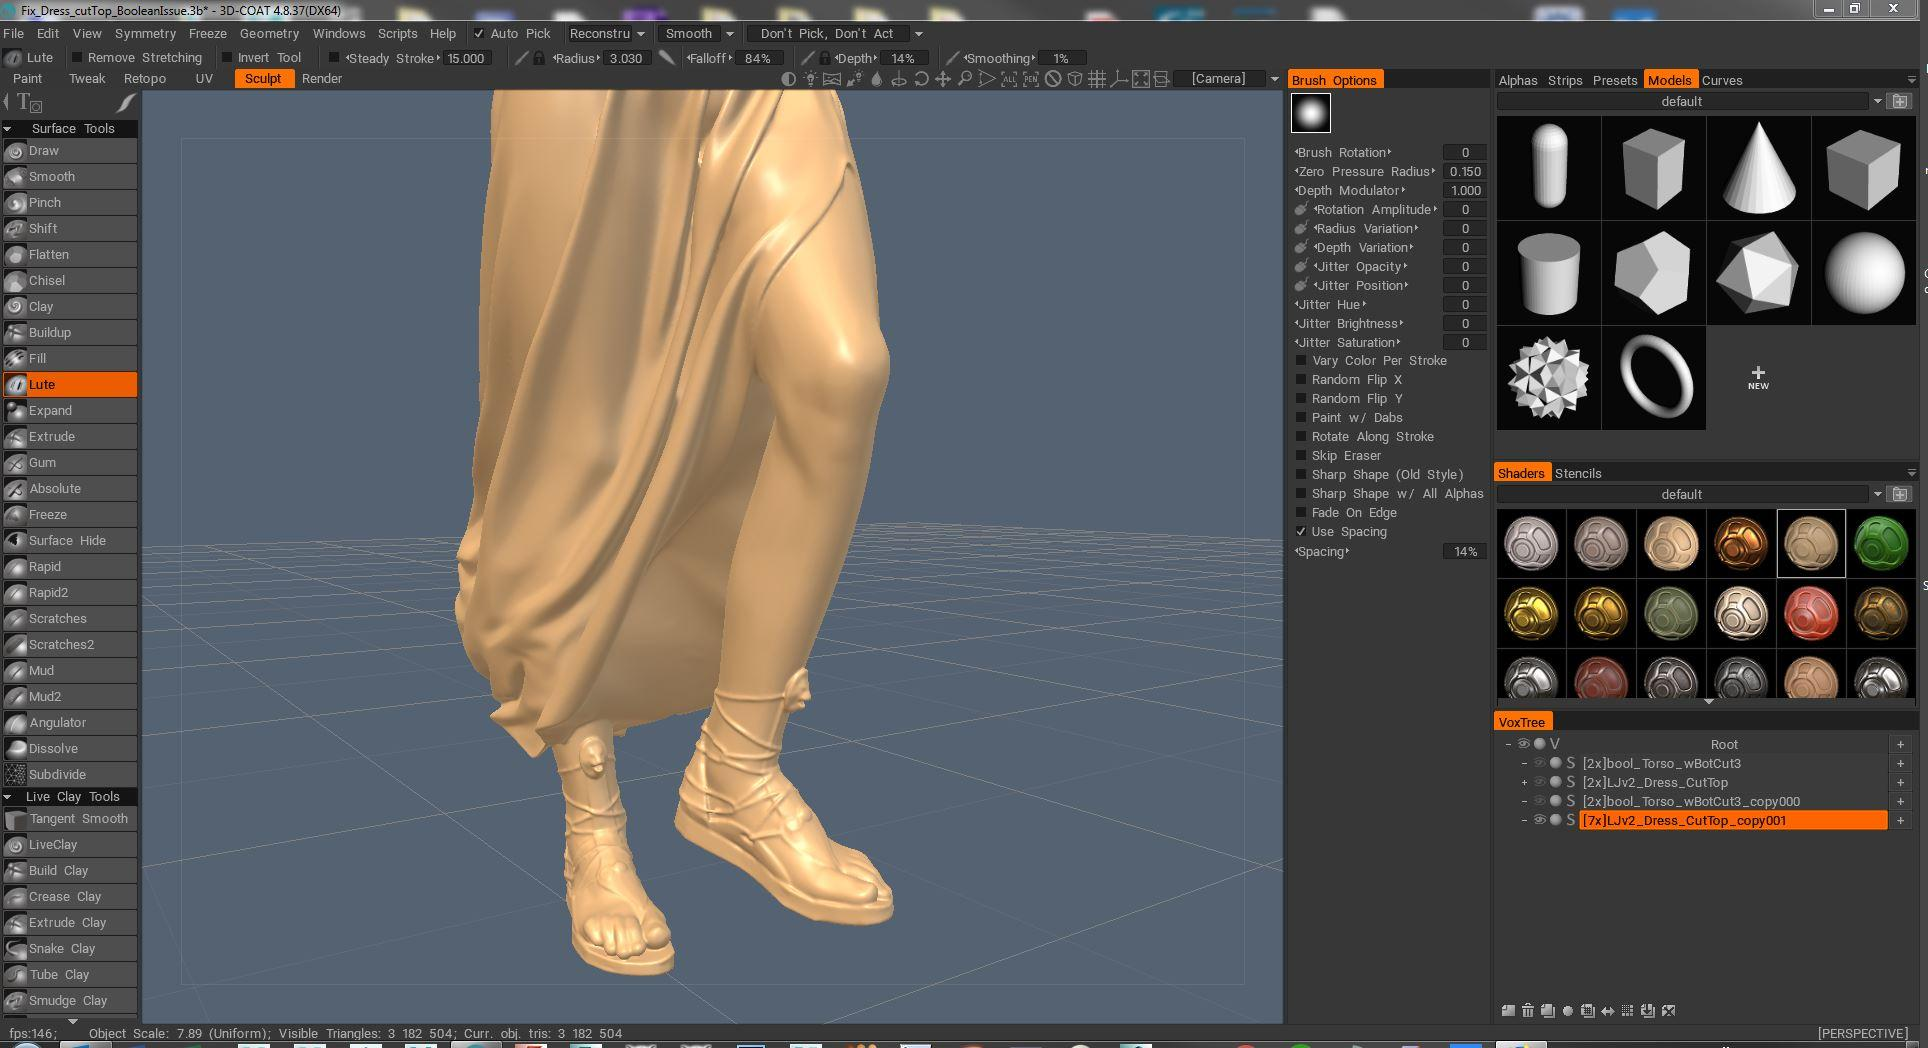 Brush to un smooth areas - 3DCoat - 3D Coat Forums